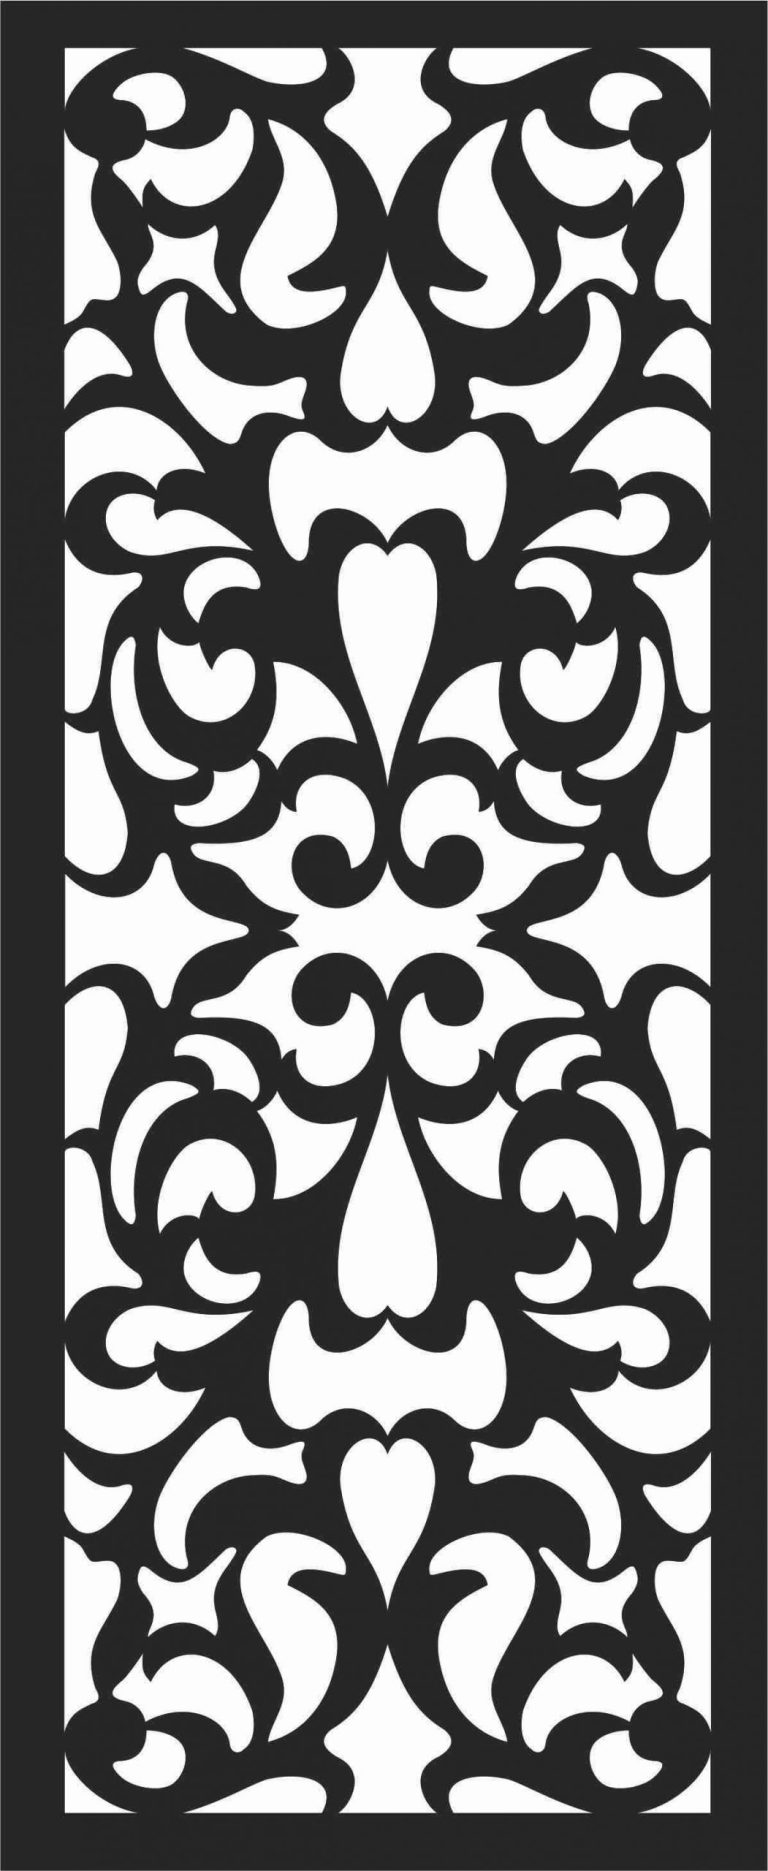 Floral Screen Patterns Design 70 Free DXF File